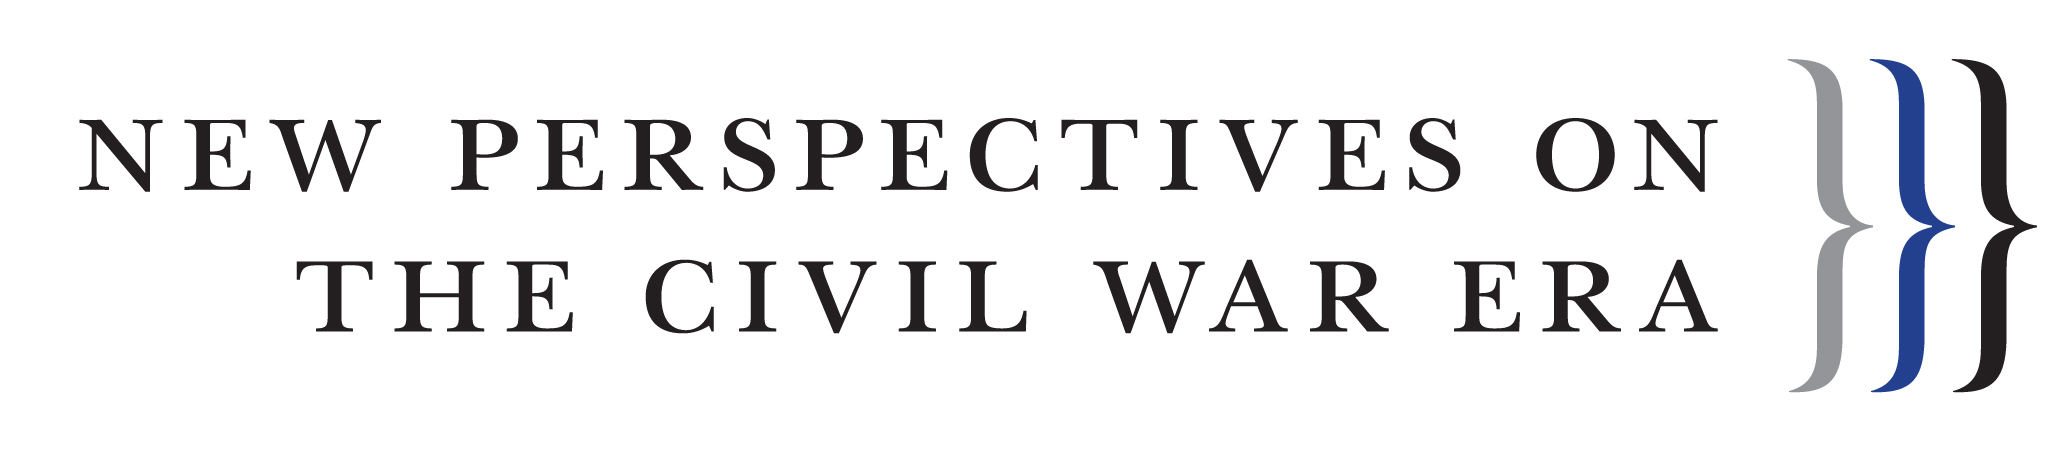 New Perspectives on the Civil War Era